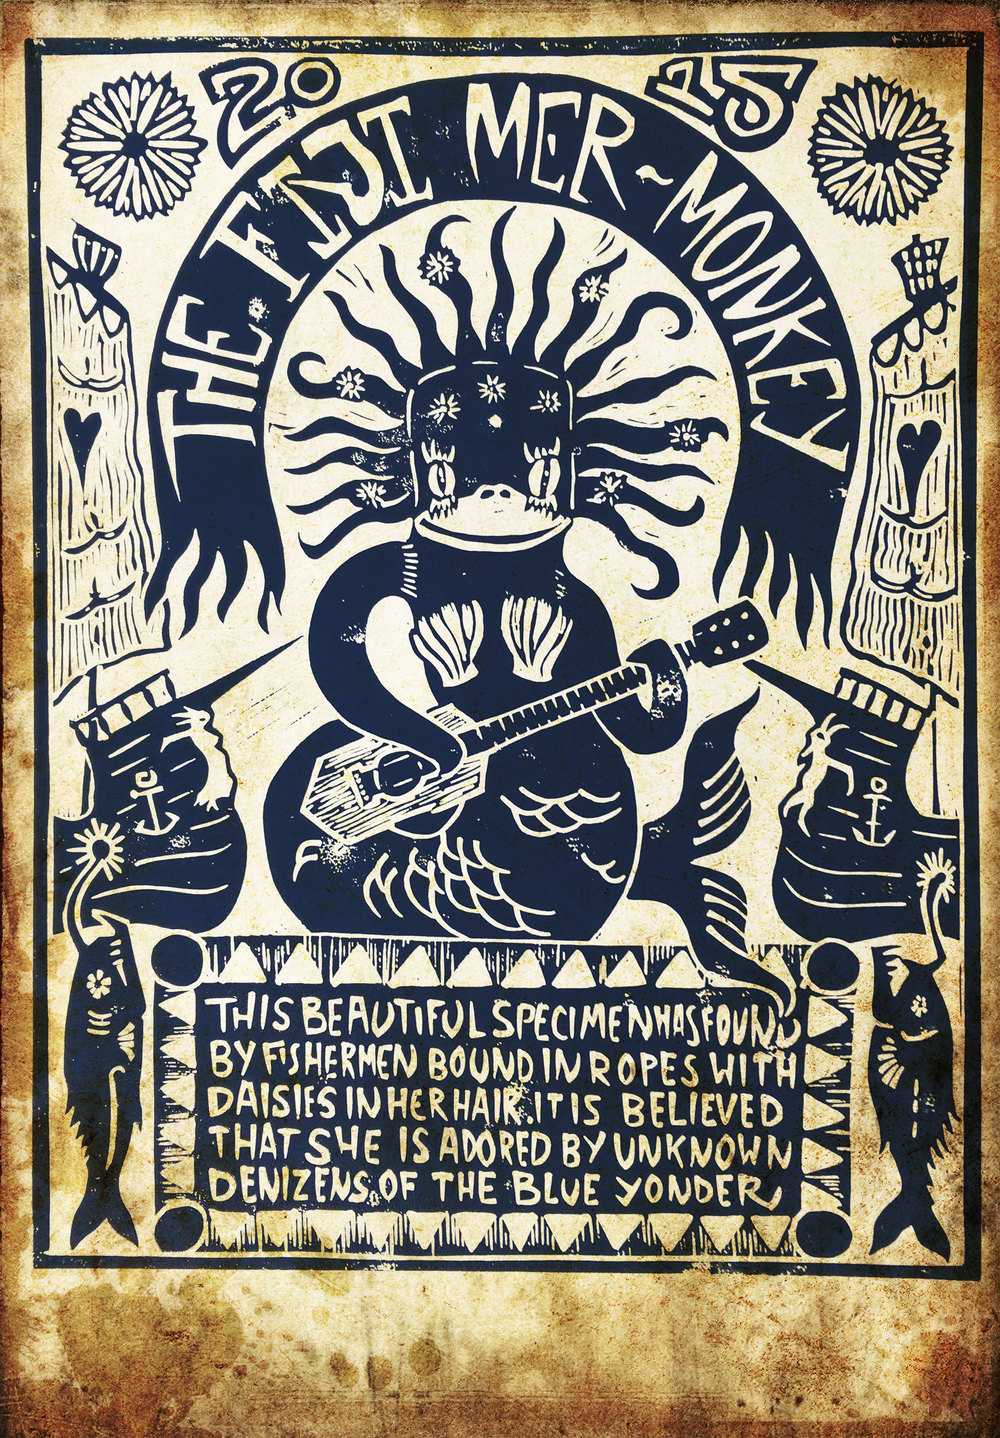 Lino Print by Ulysses Black of the sock-monkey version of a feejee-mermaid. Two angler fish with their lures intended to recall the siren song of the mermaid, again re-enforced by the odyssean figureheads pinned to the bows of the ship of love. The composition is also intended to be slightly suggestive of both the Priestess tarot card and the moon.